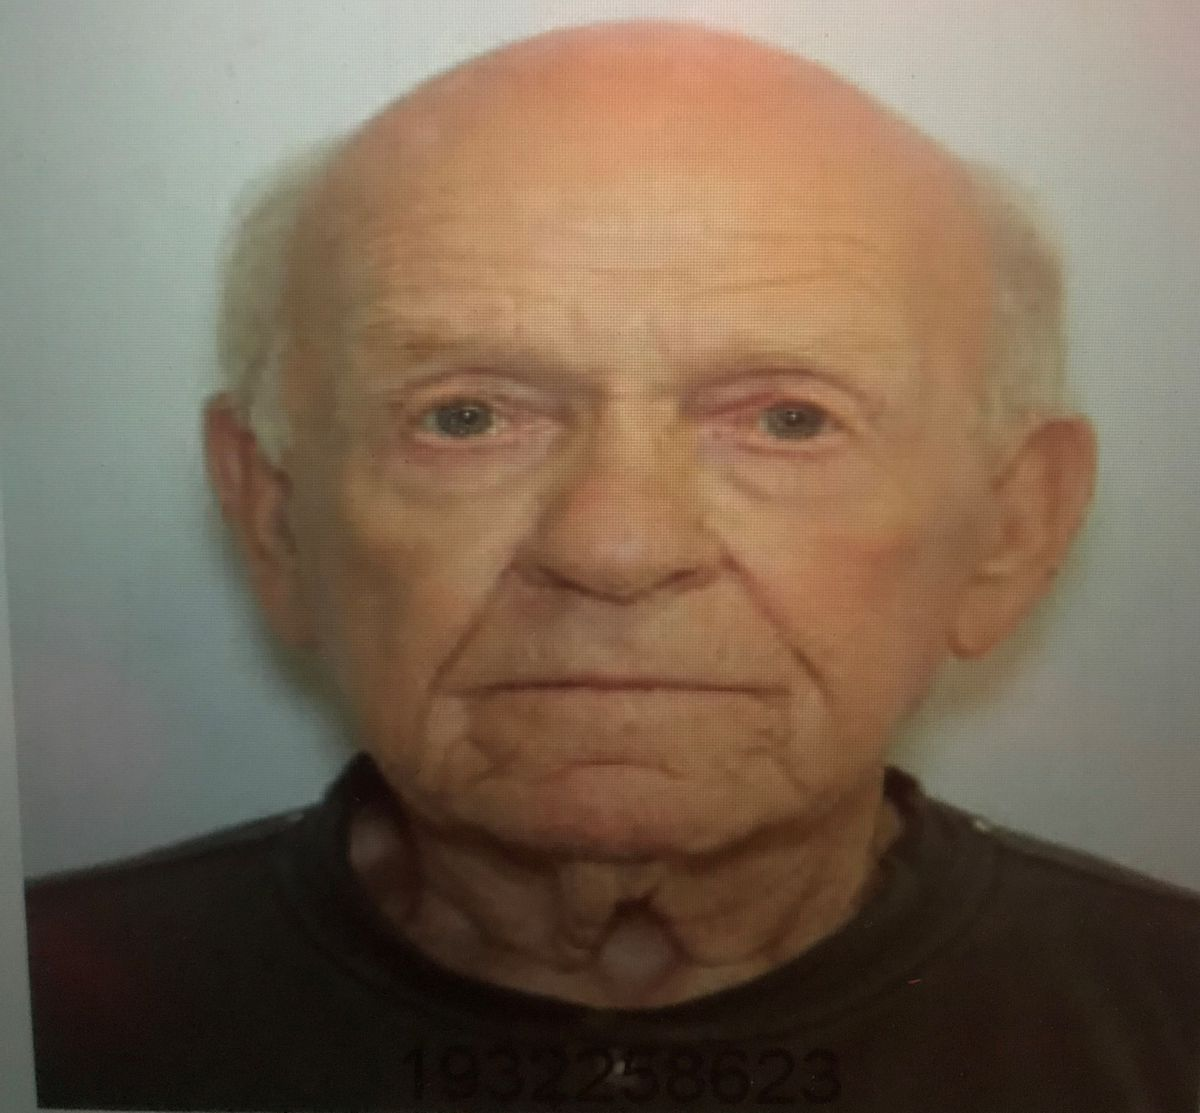 Vans Yacht Club Old Skool On Feet: BCSO Locates Missing 81-year-old Man